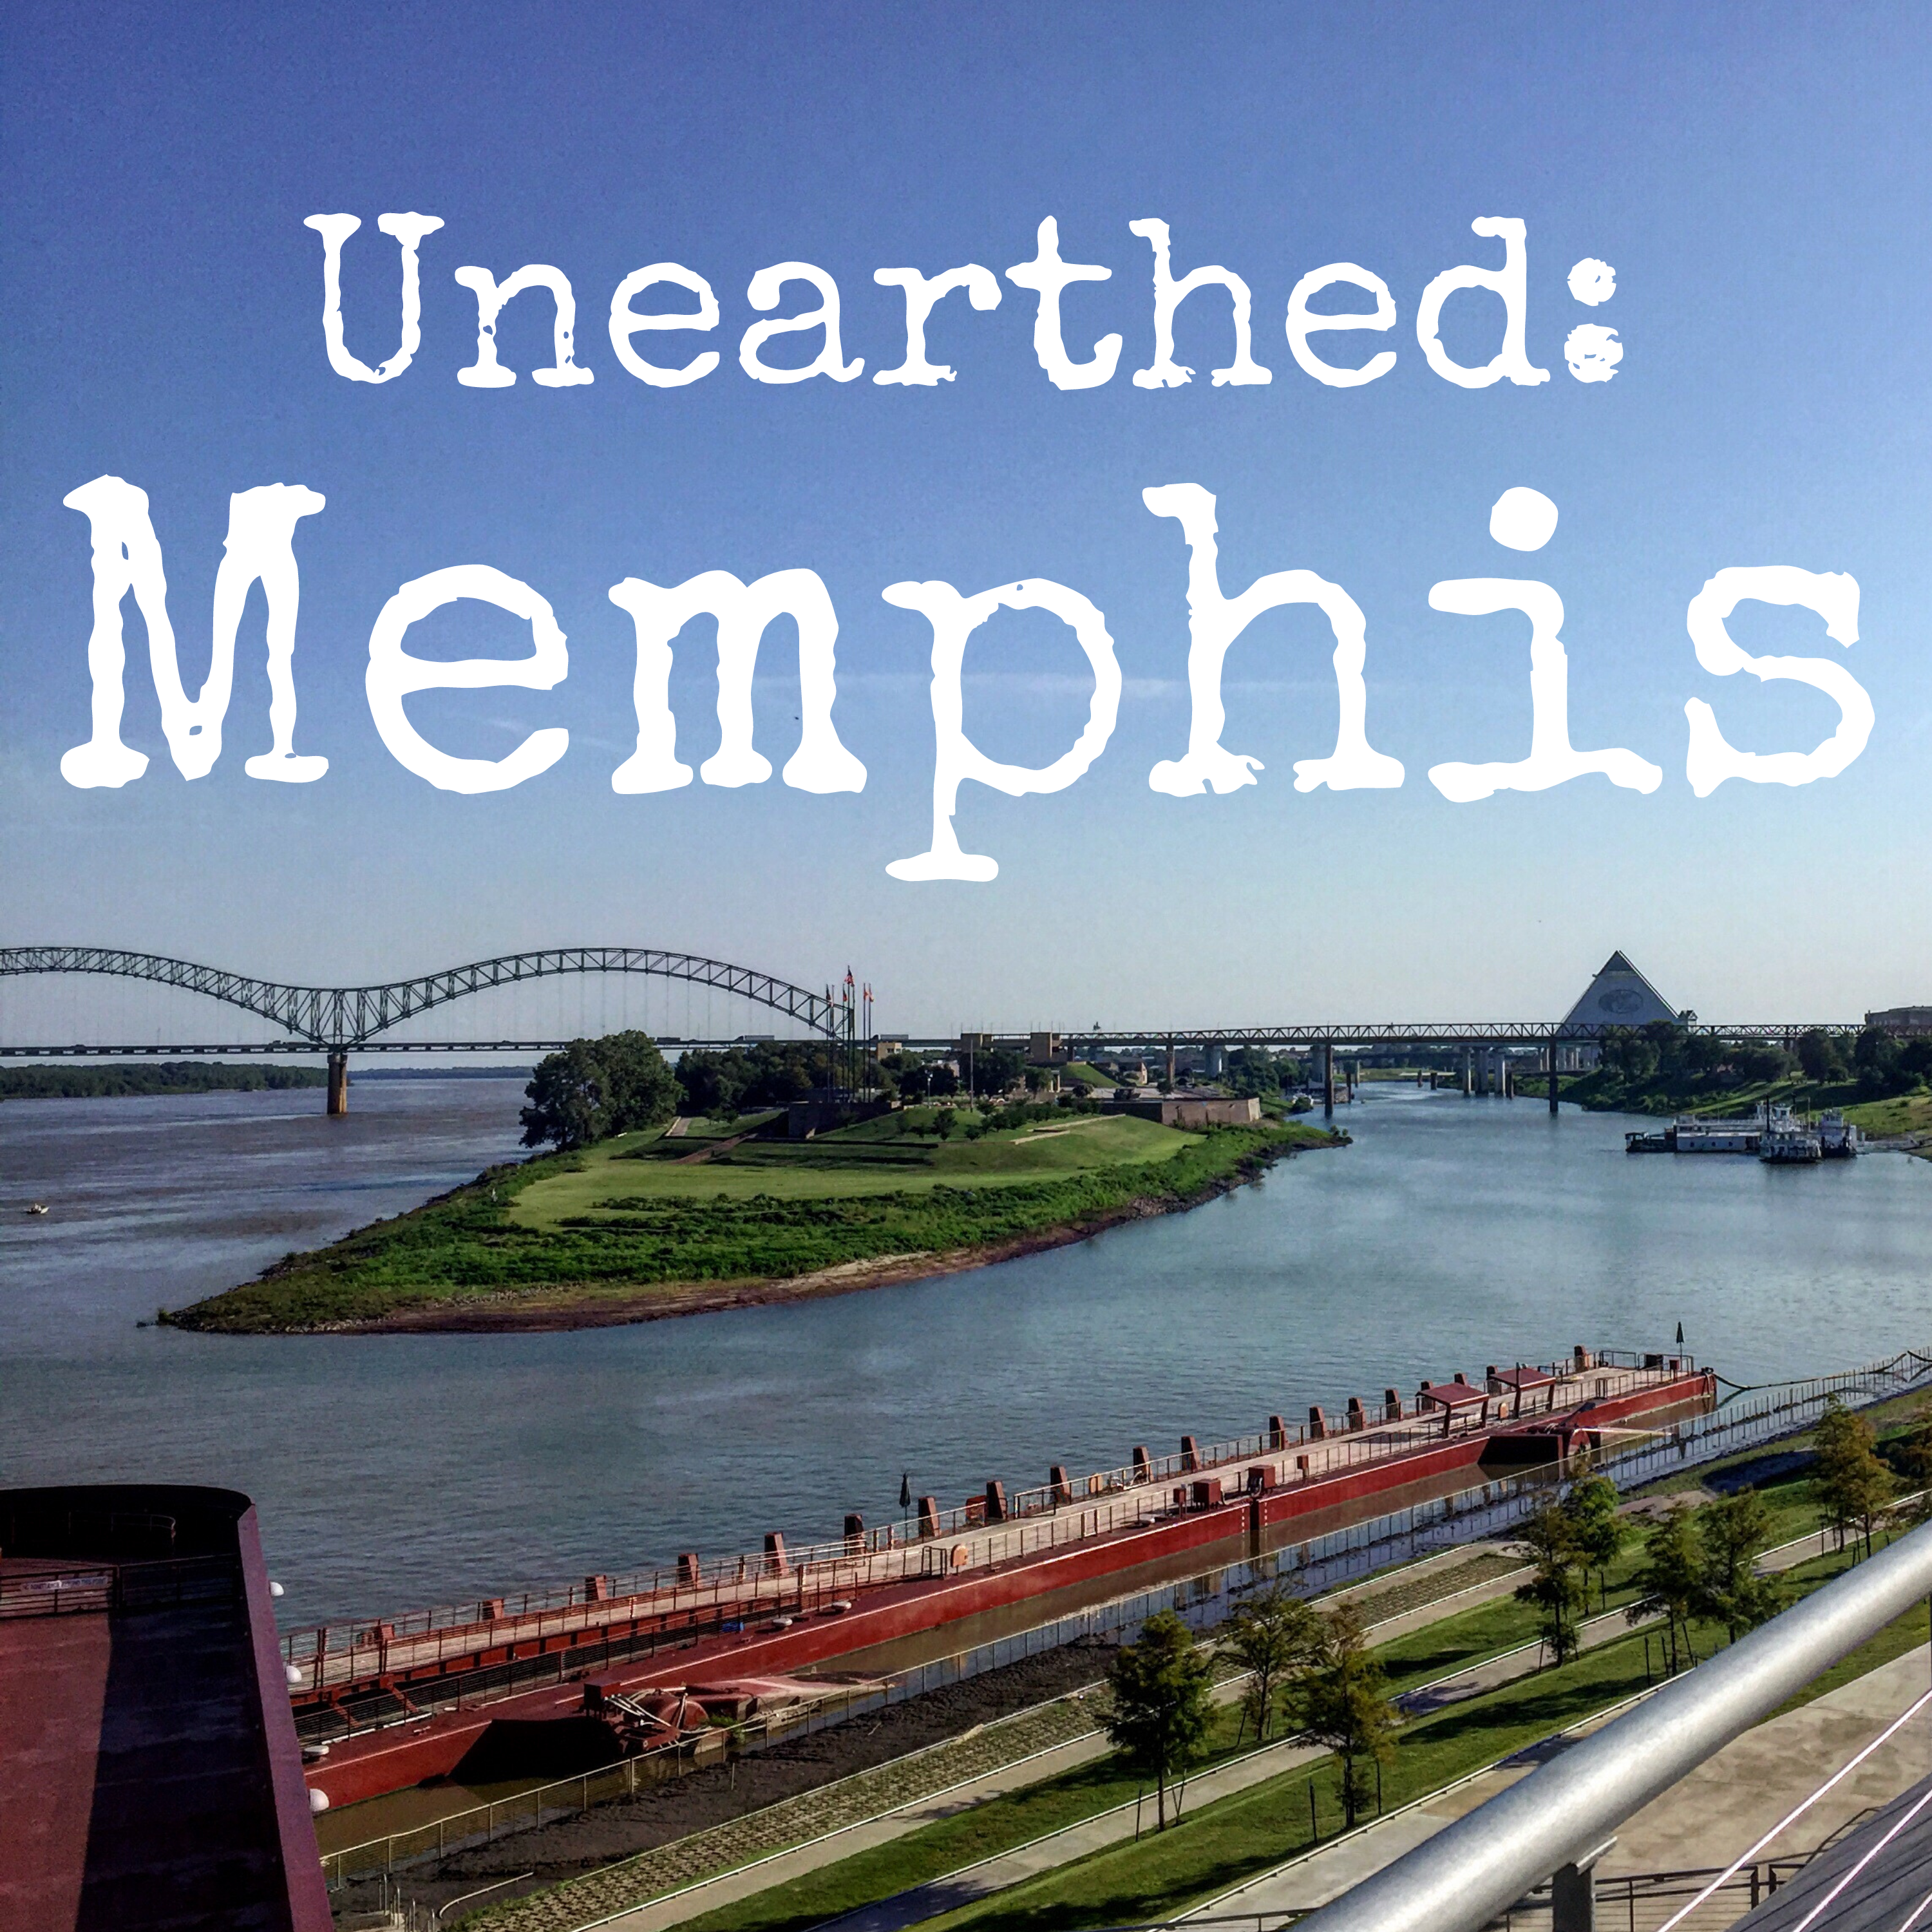 Unearthed: Memphis